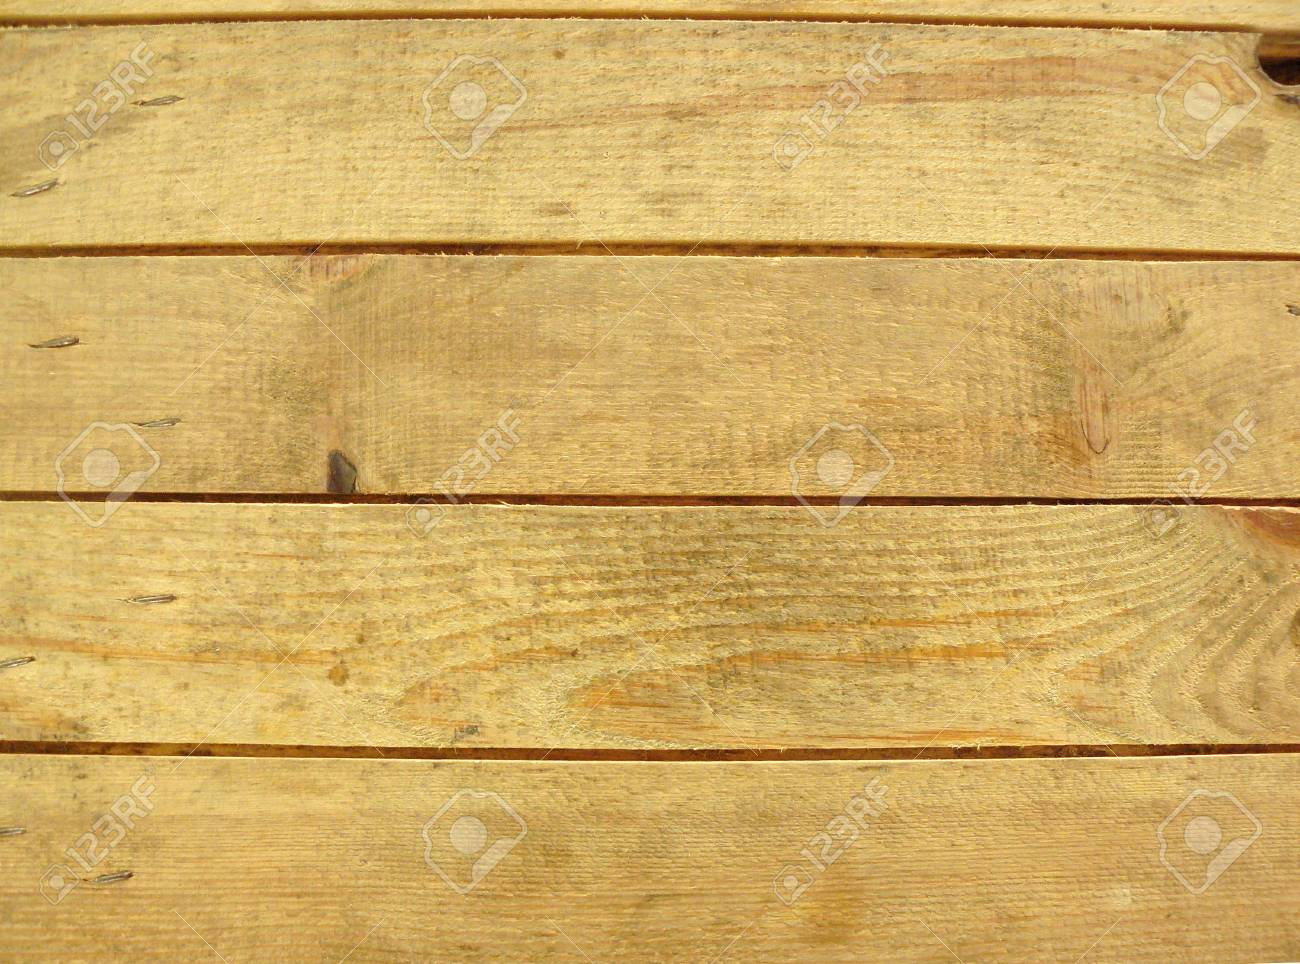 A Photo Of Wooden Crate Cover Close Up Texture For Background Stock